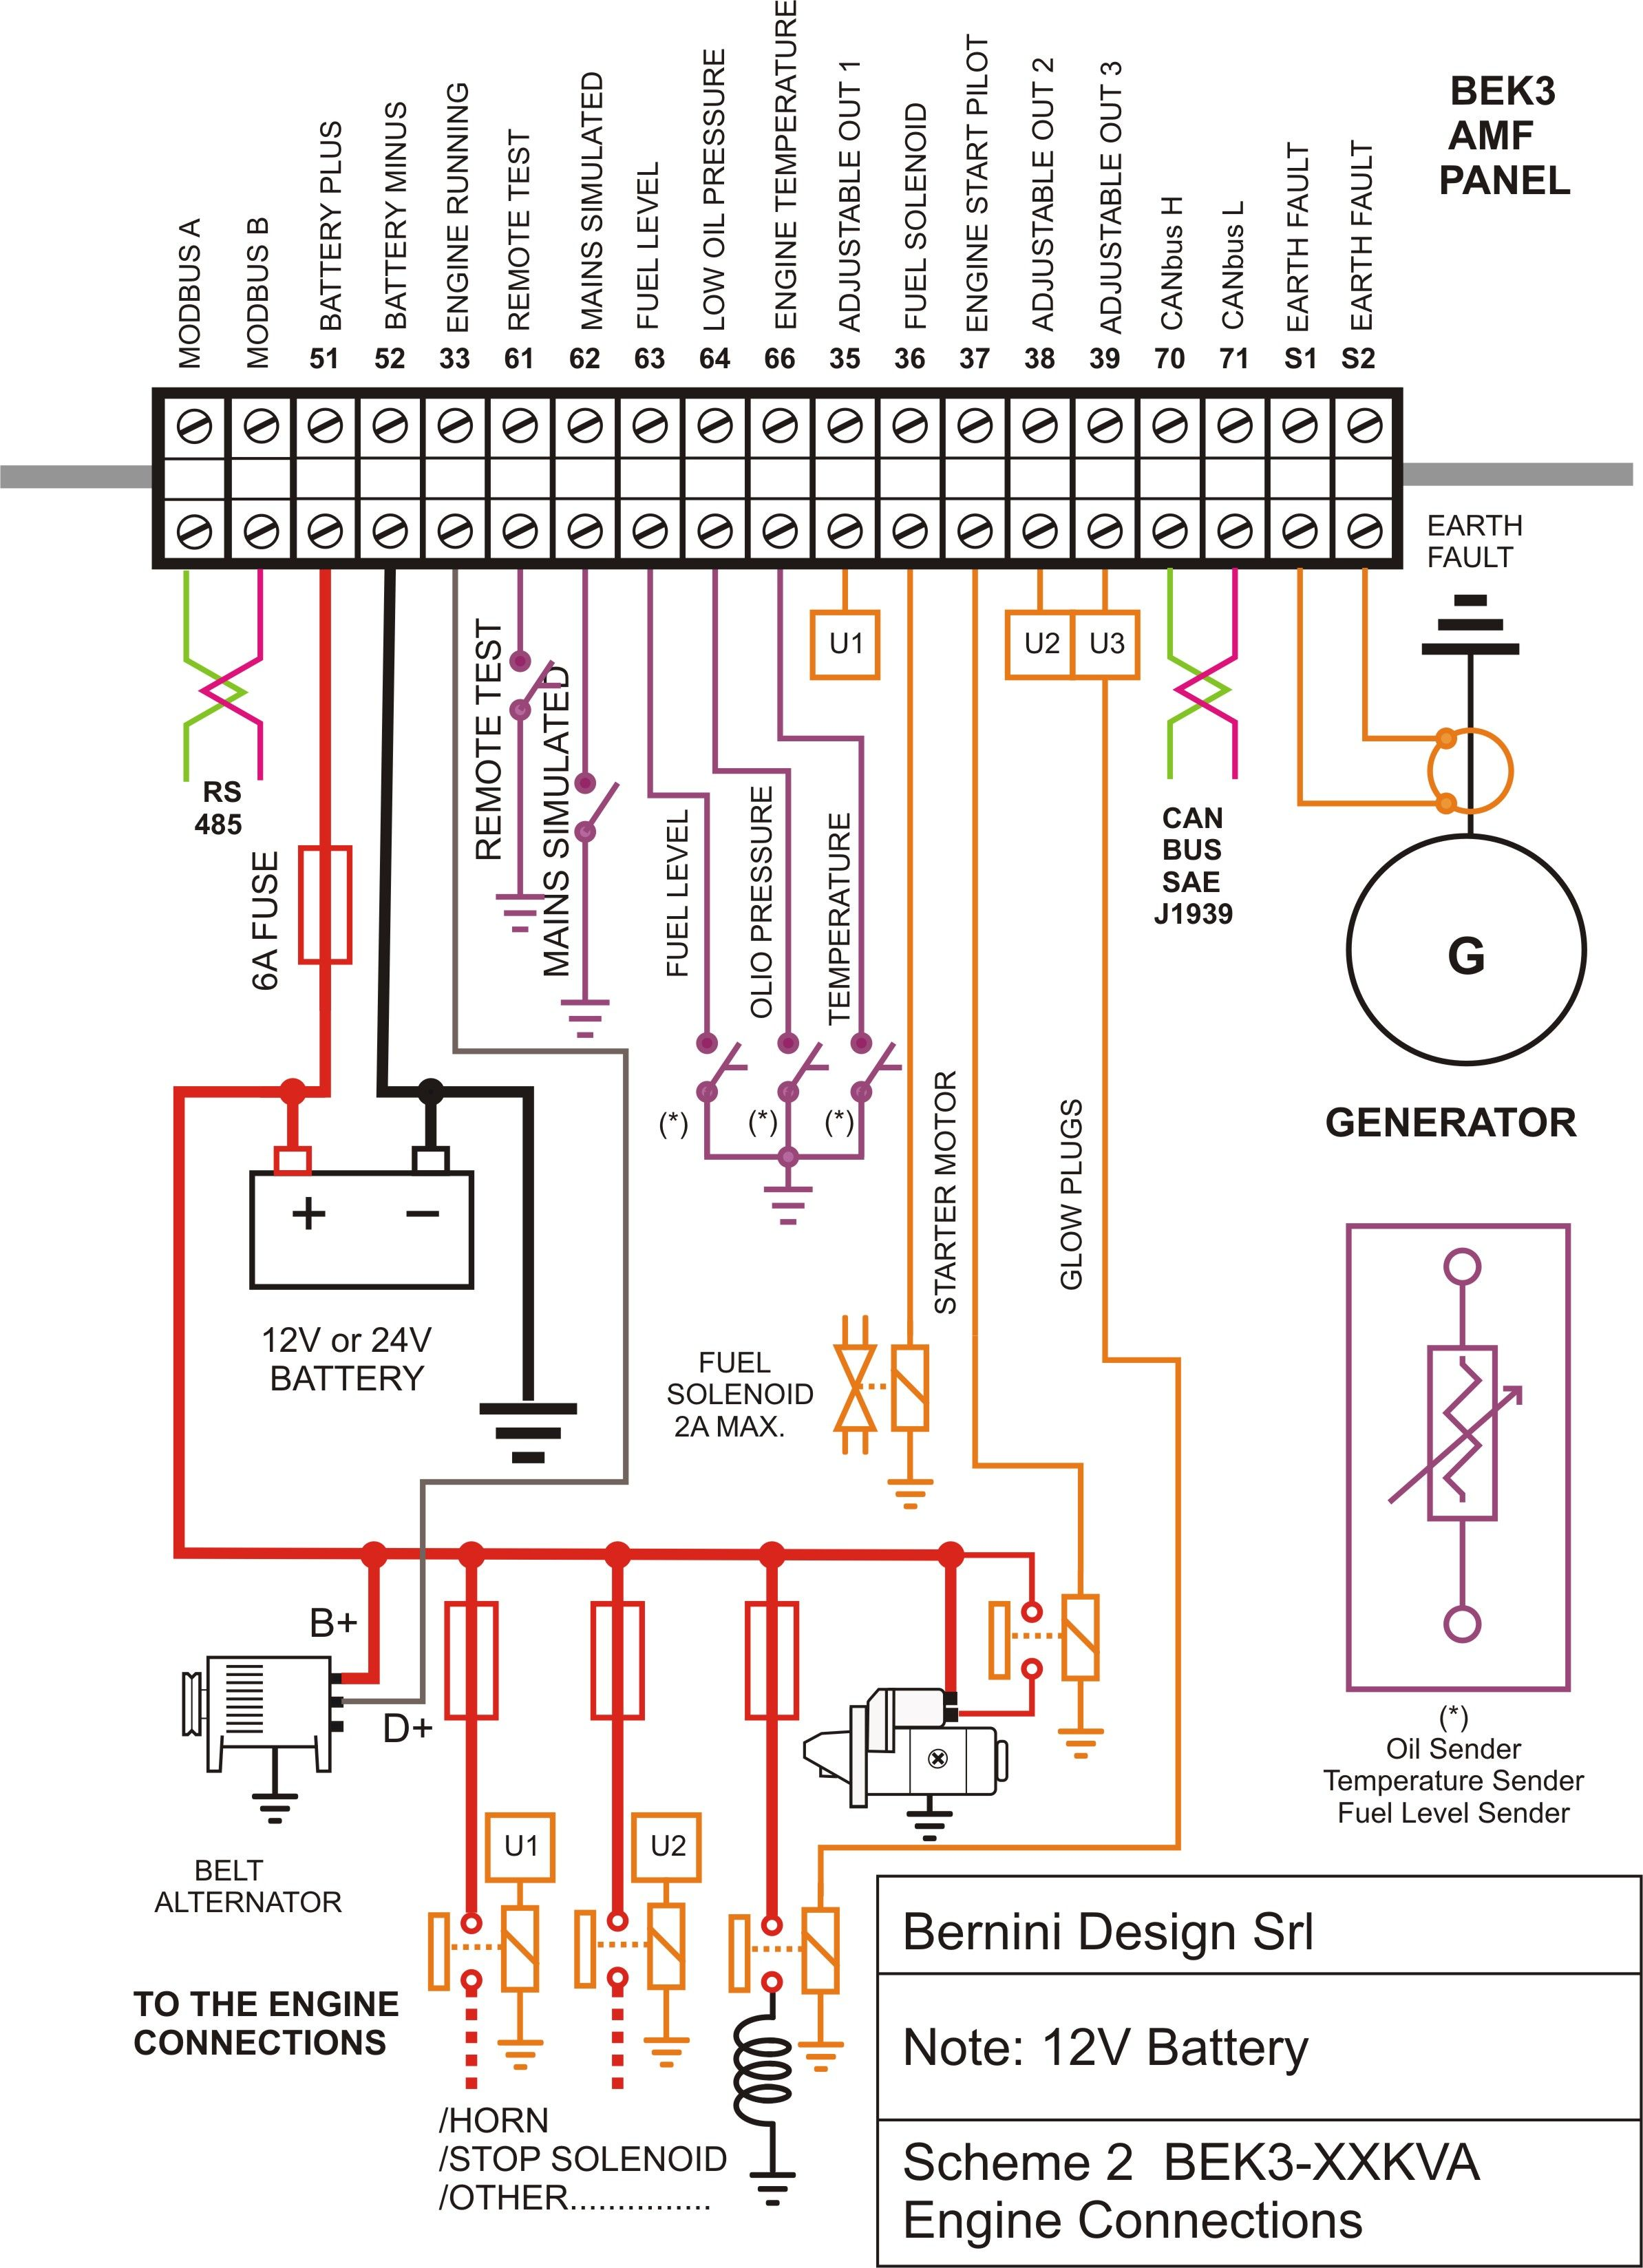 diesel generator control panel wiring diagram Engine Connections | gr di 2019